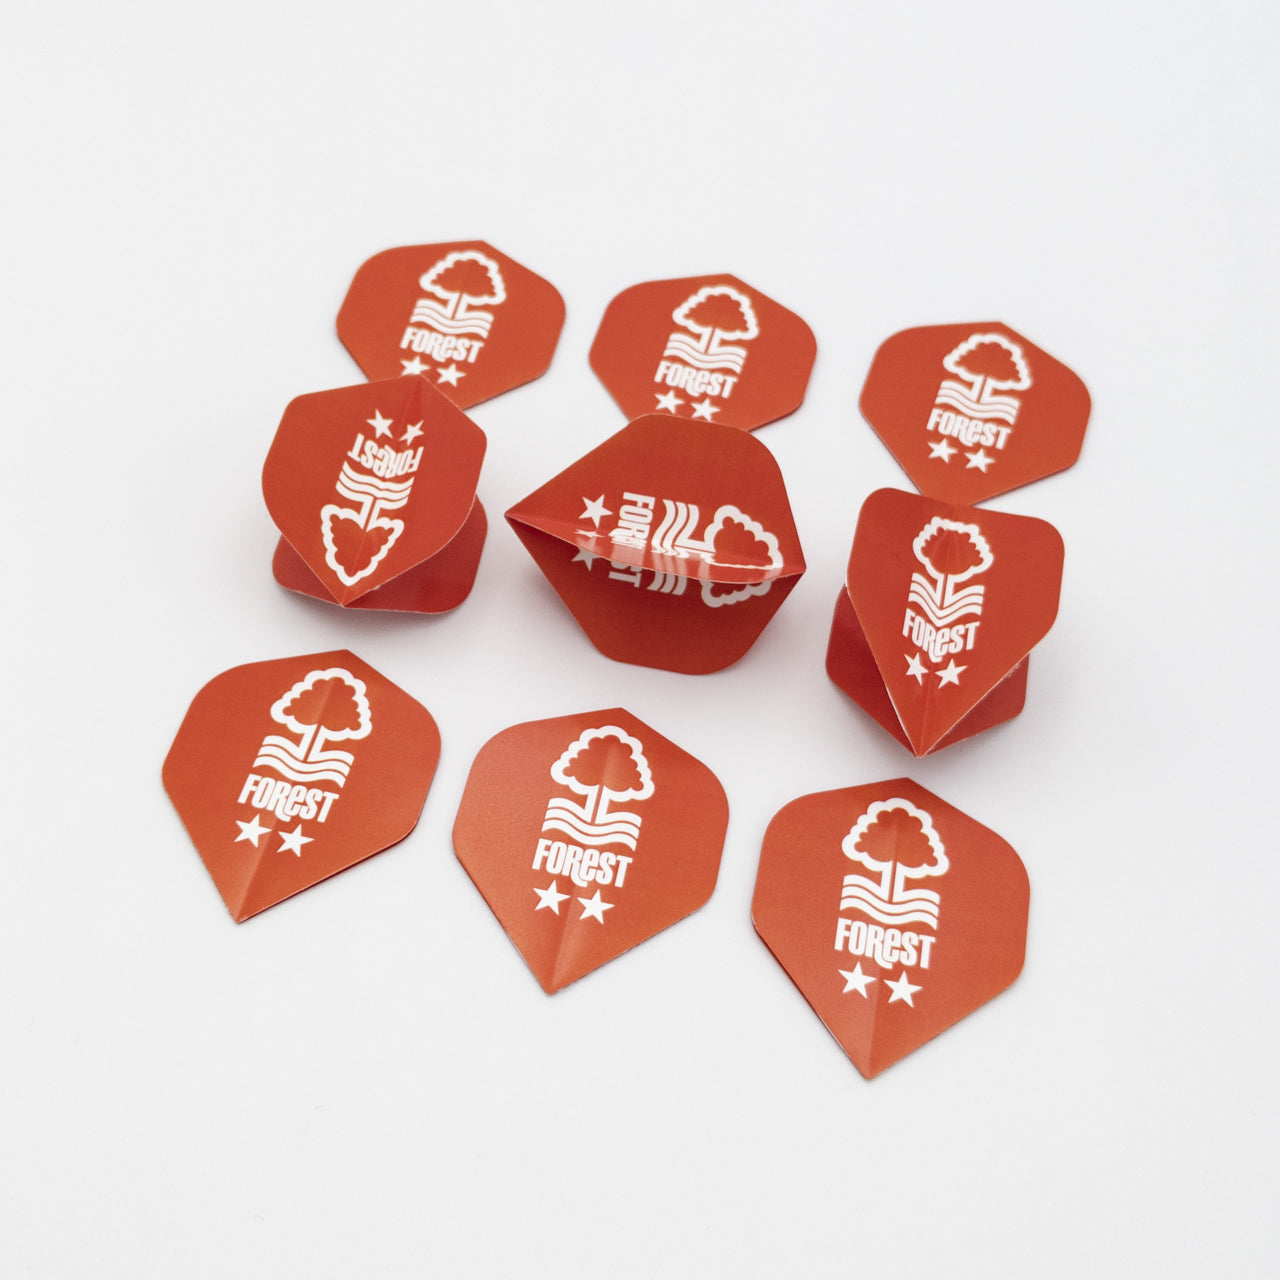 NFFC 9x Dart Flight Set